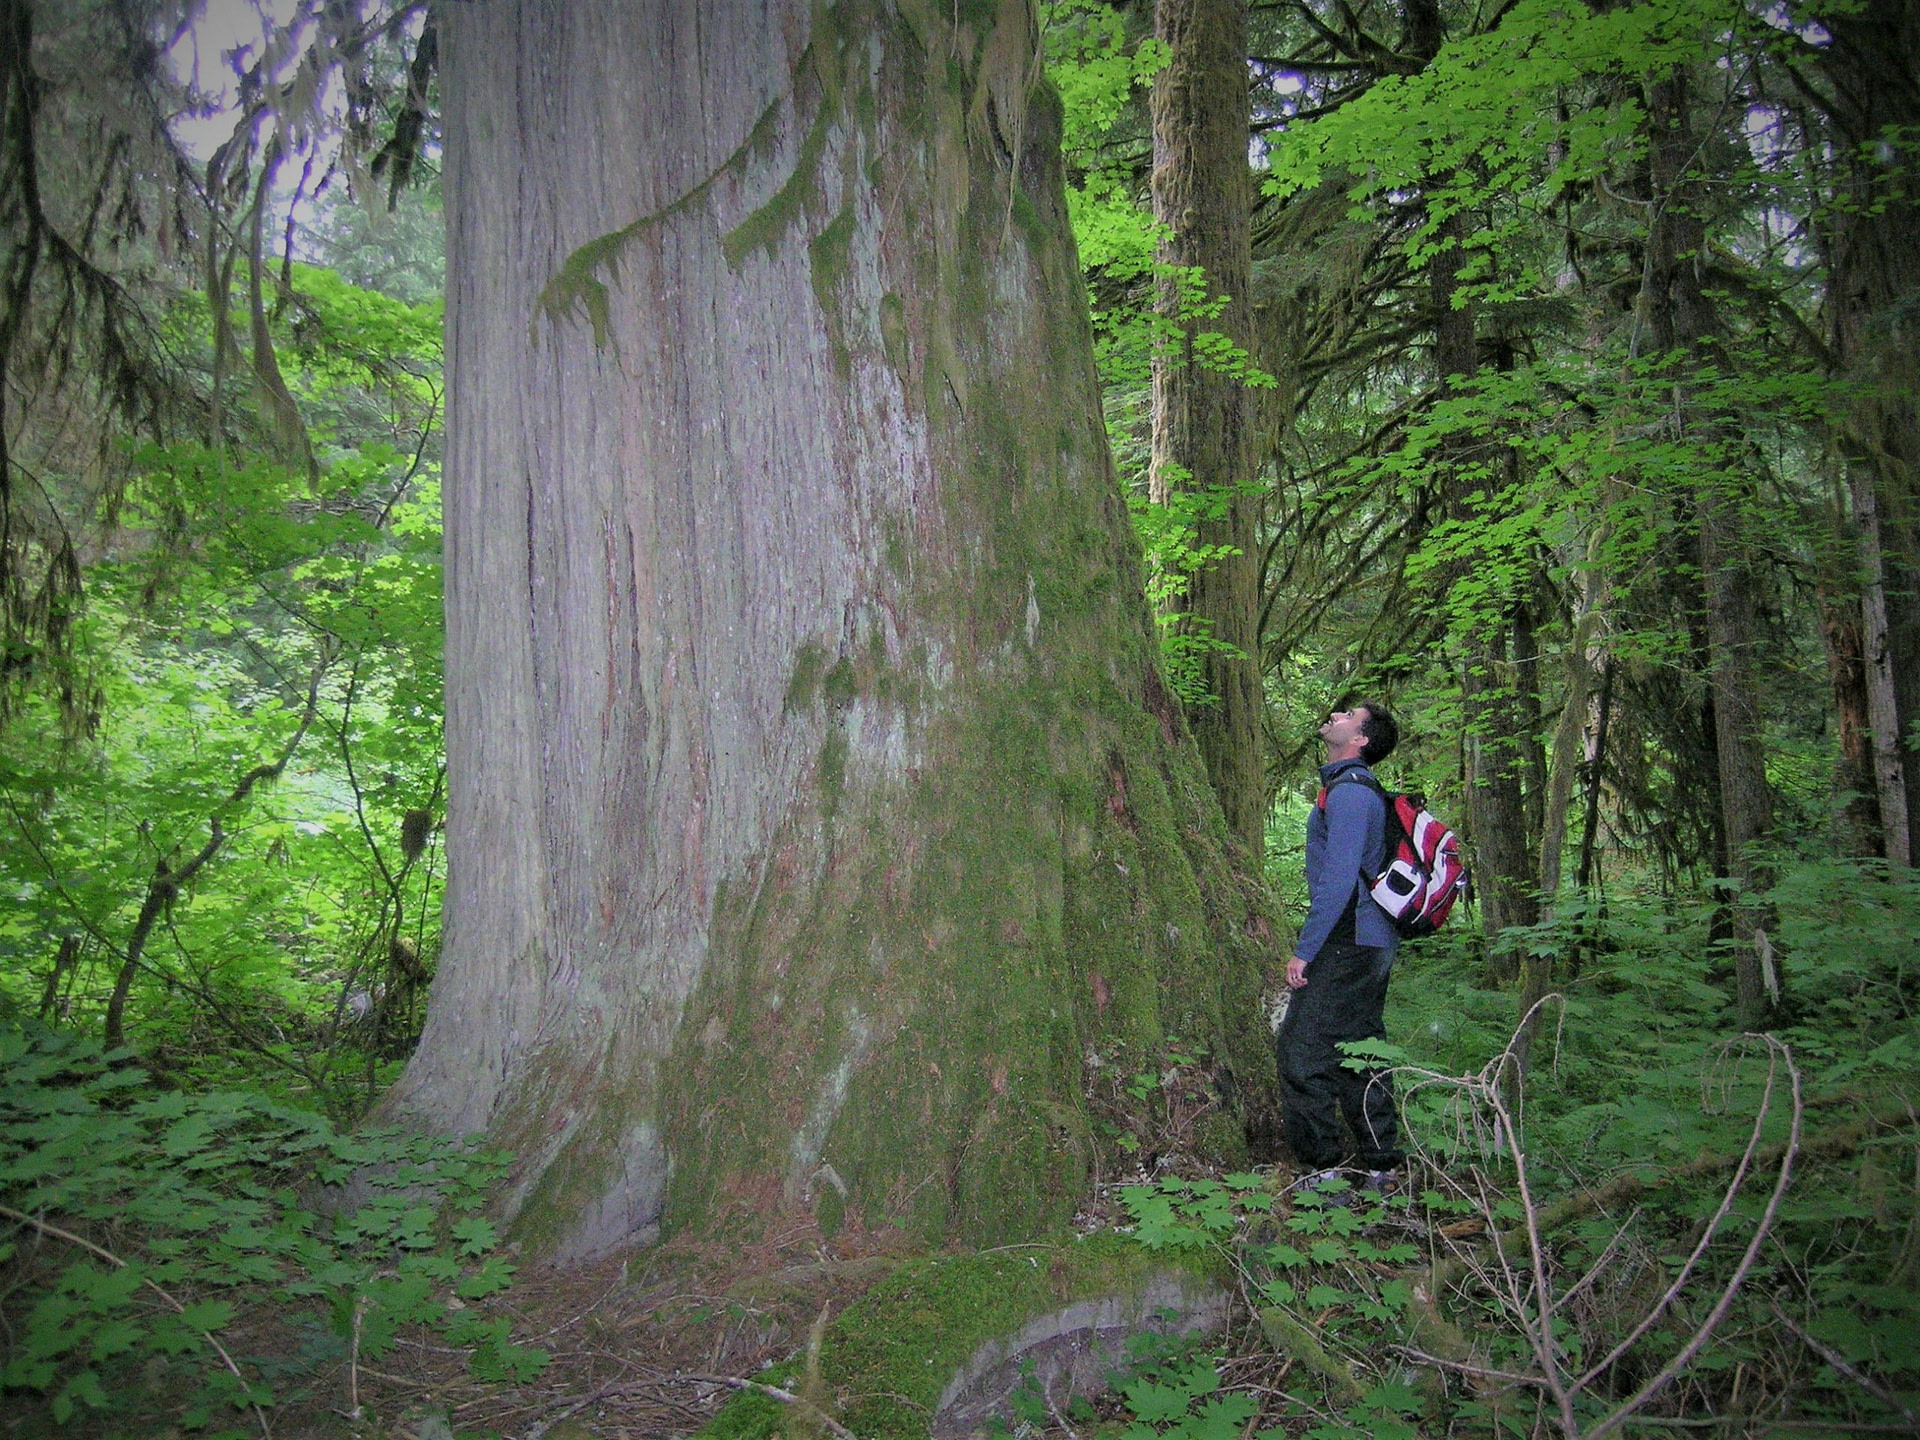 A man stands beside and looks up at a gigantic old growth tree on the coast of BC